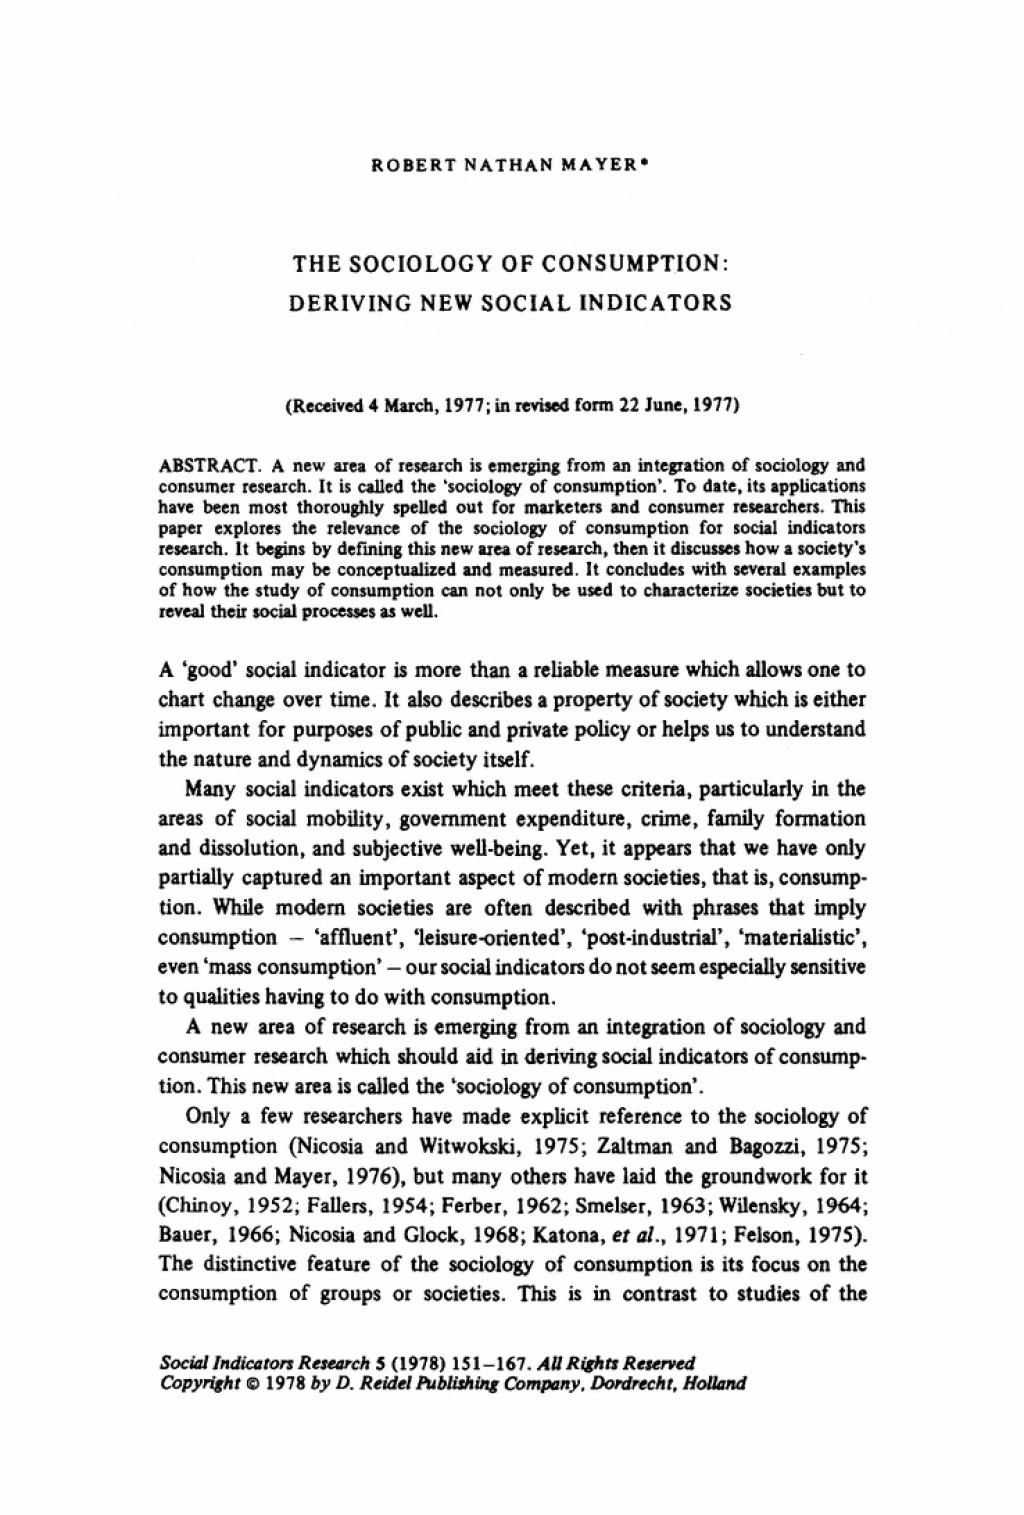 005 Argumentative Essay Proposal Examples L Research Paper Easy Sociology Awful Topics Large